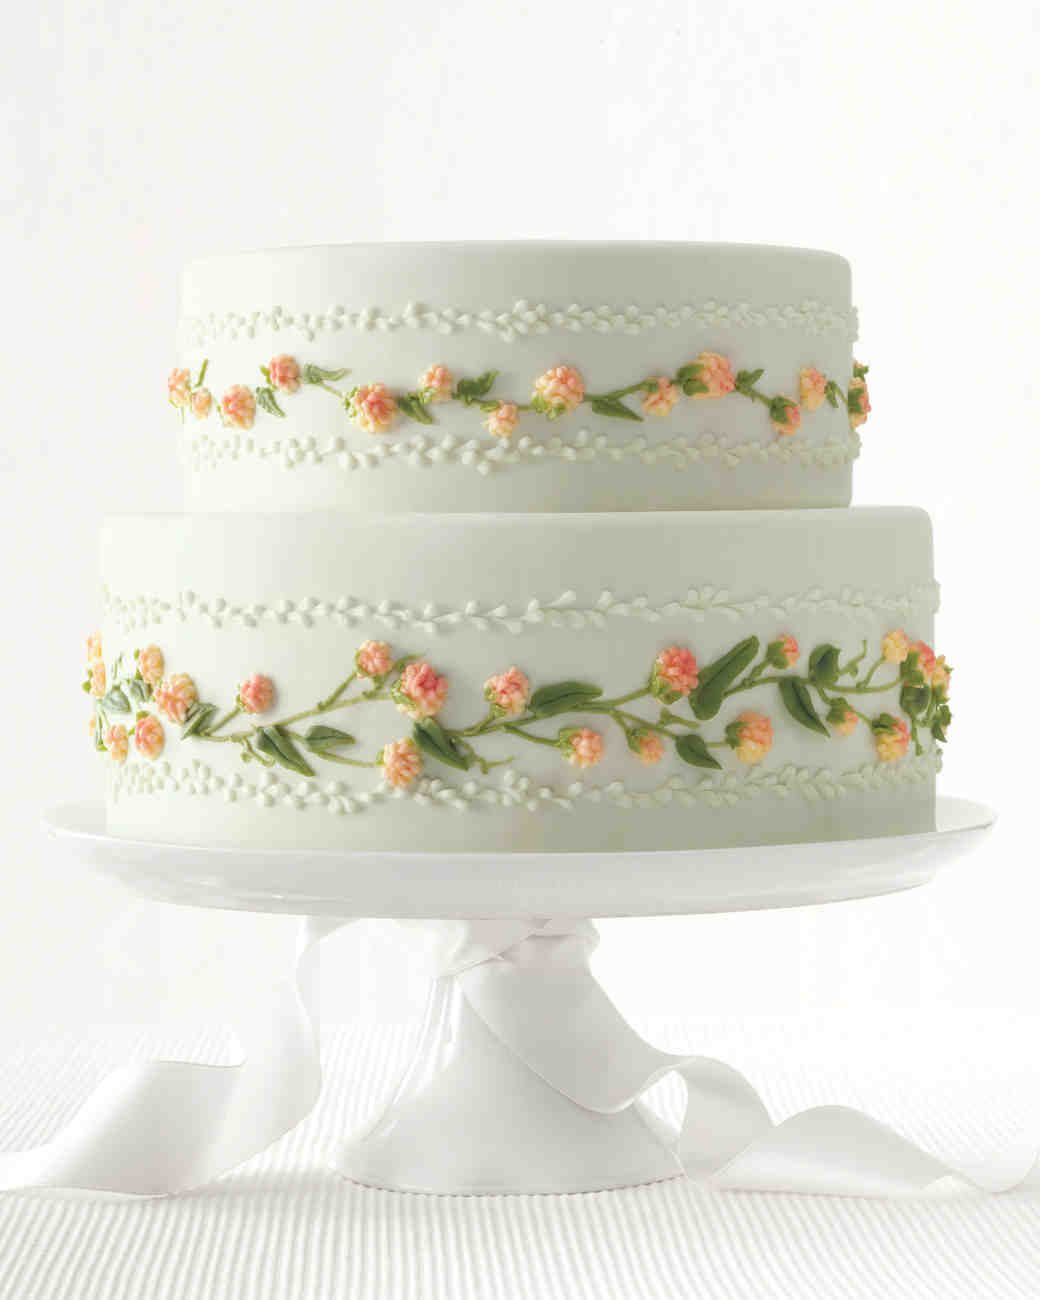 martha stewart wedding cakes pictures new takes on traditional wedding cake flavors martha 17208